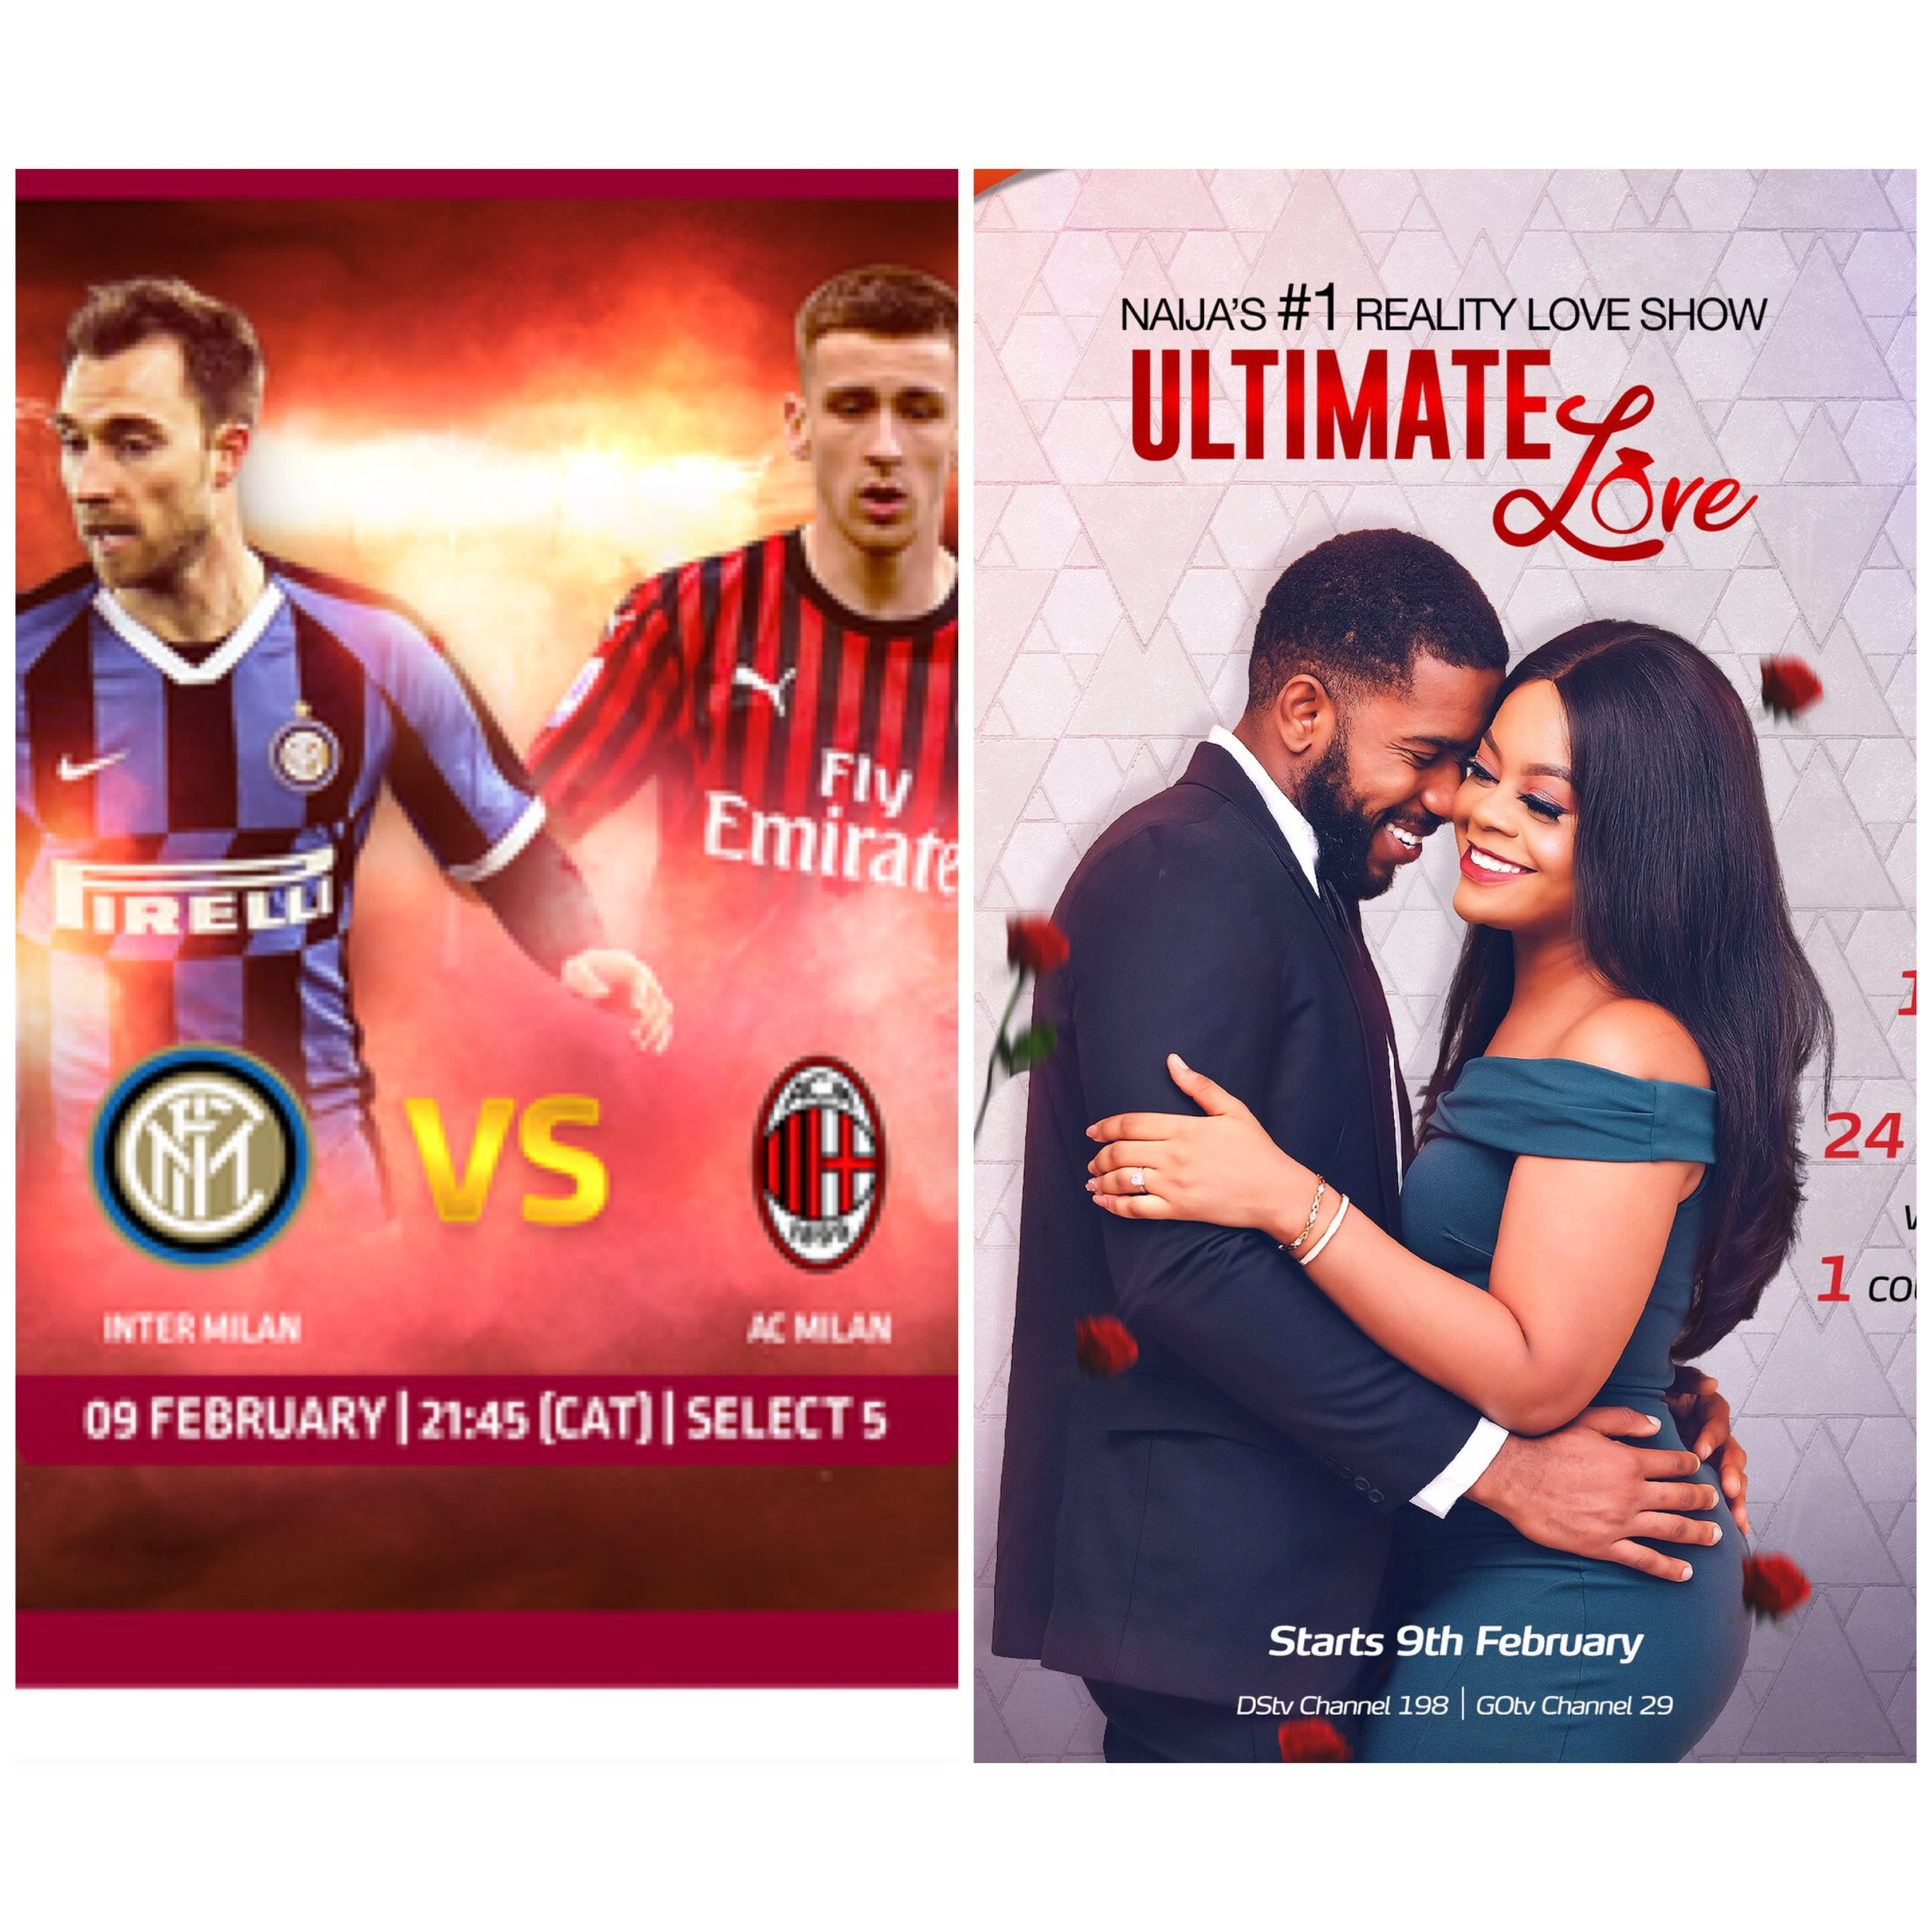 Milan Derby, Ultimate Love Premiere, Lagos City Marathon and more this Weekend on GOtv